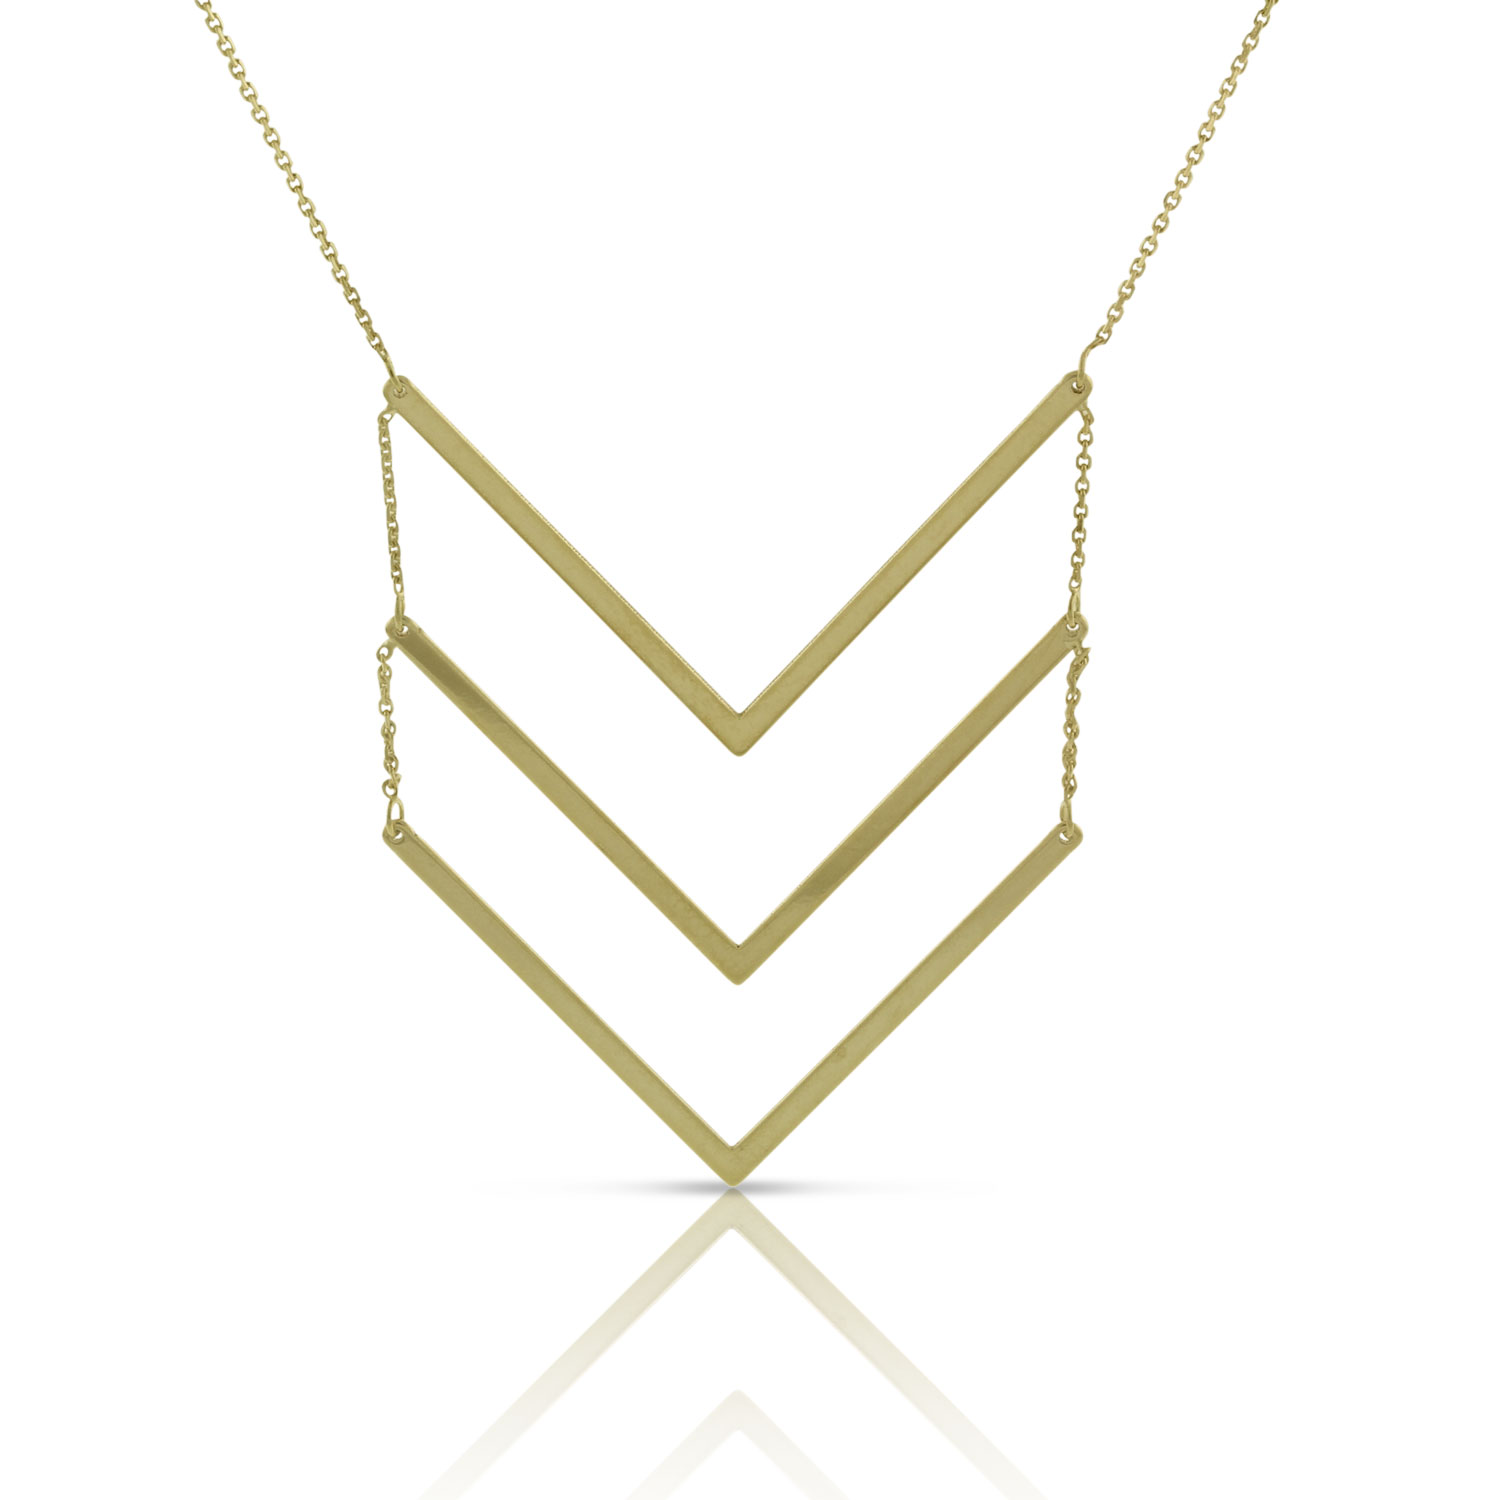 Ring clipart gold necklace #14